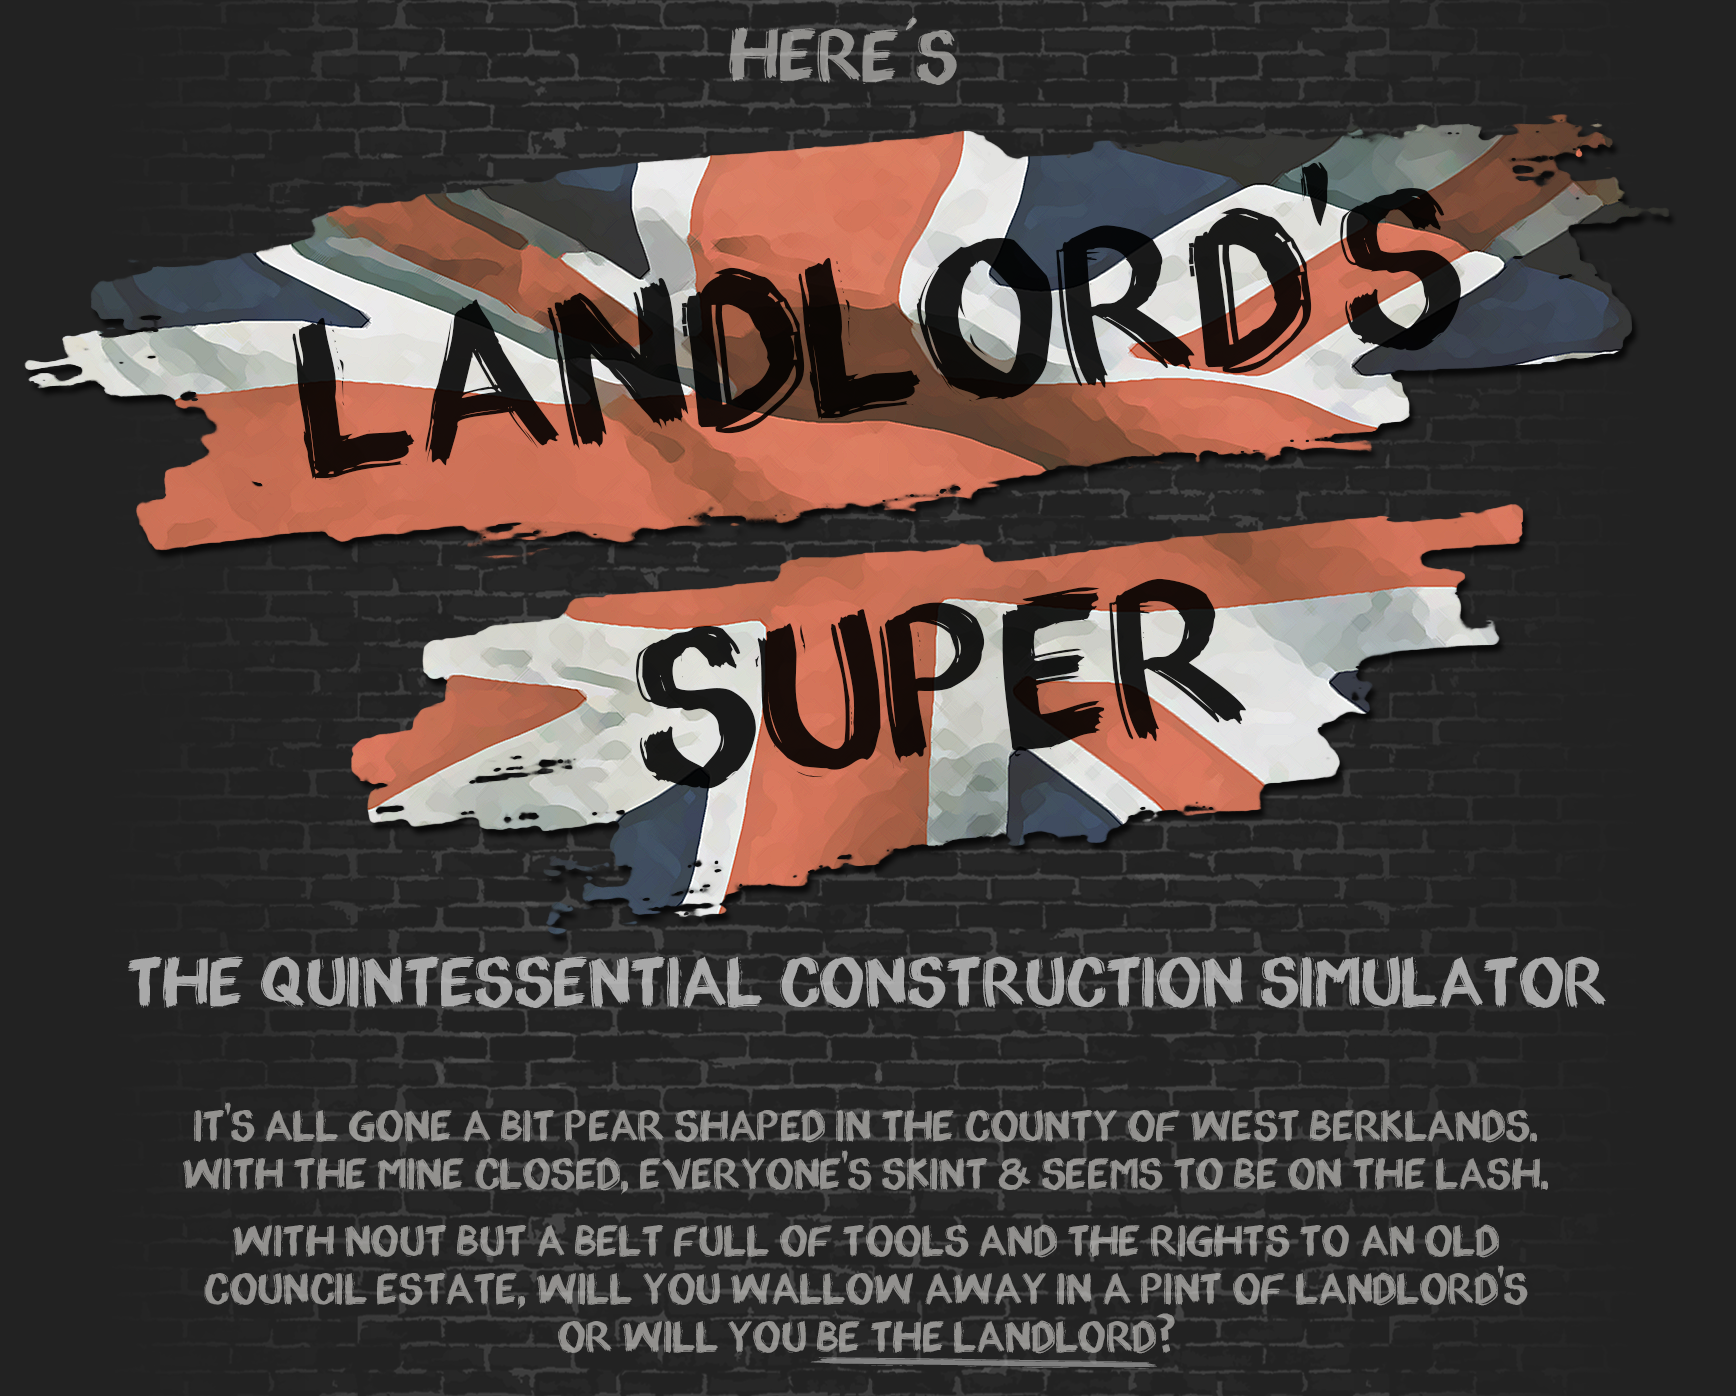 LandlordsSuper_UK_03